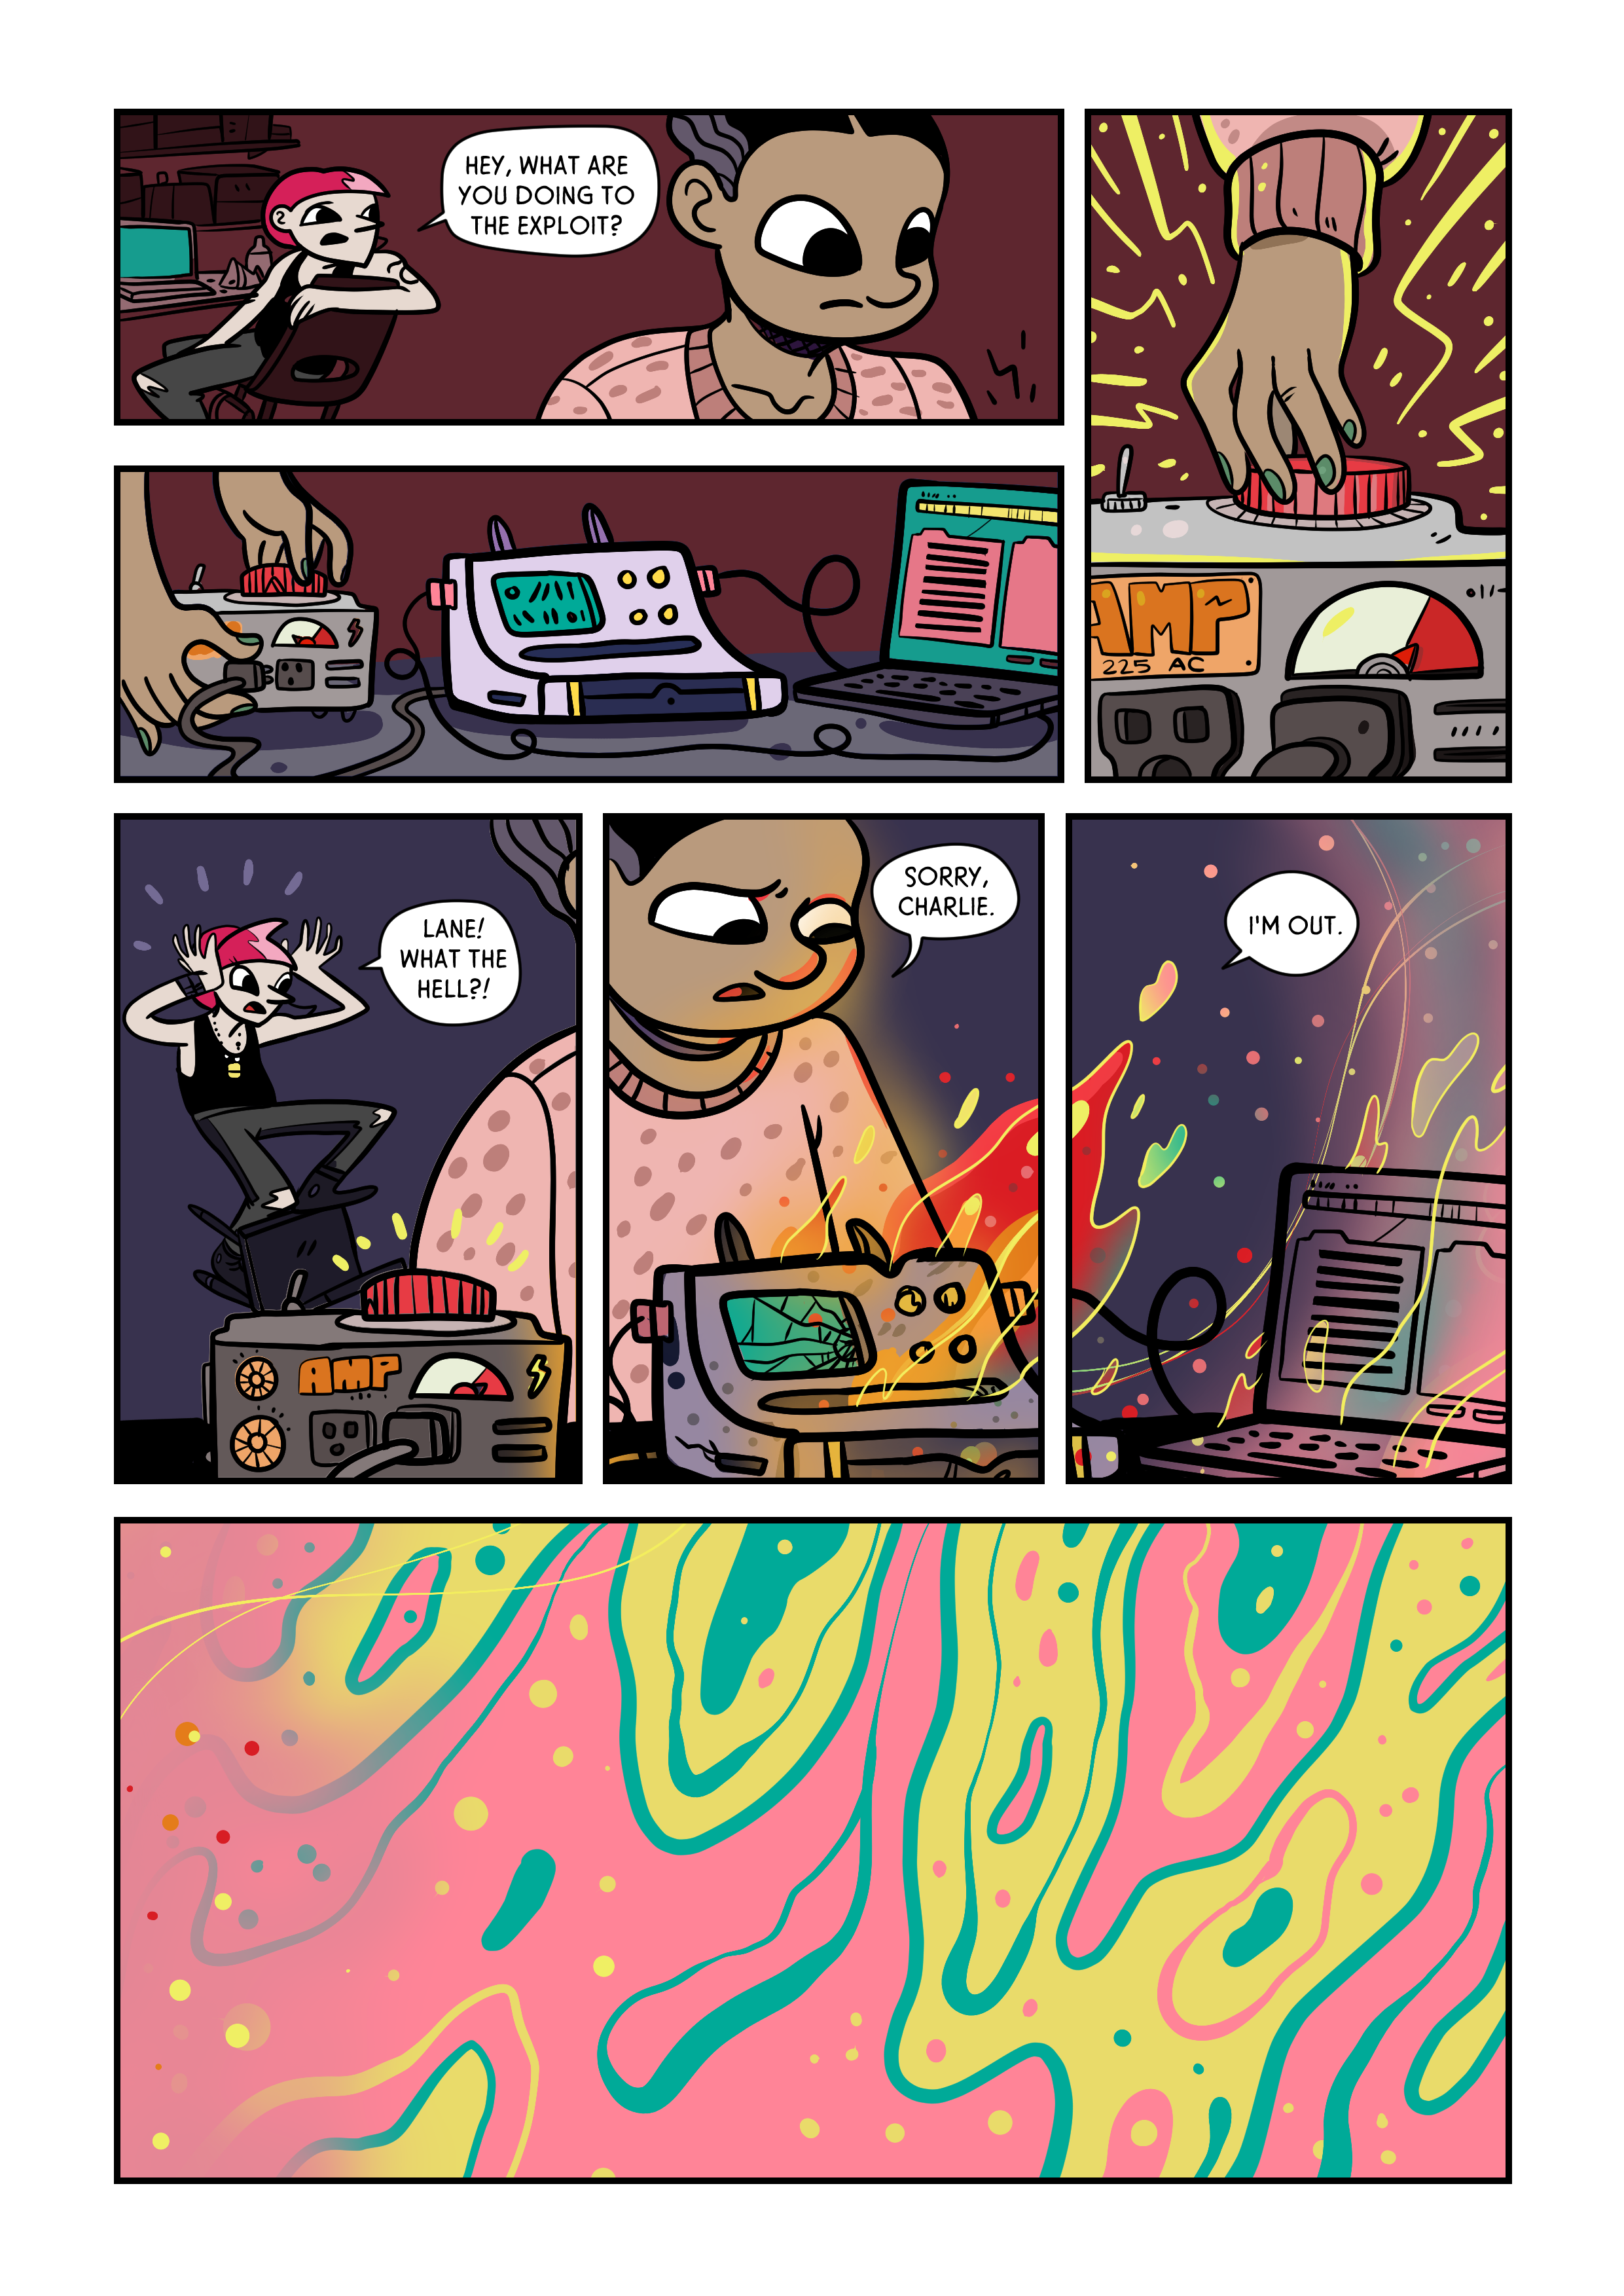 the_exploit_comic_ch2_5.png